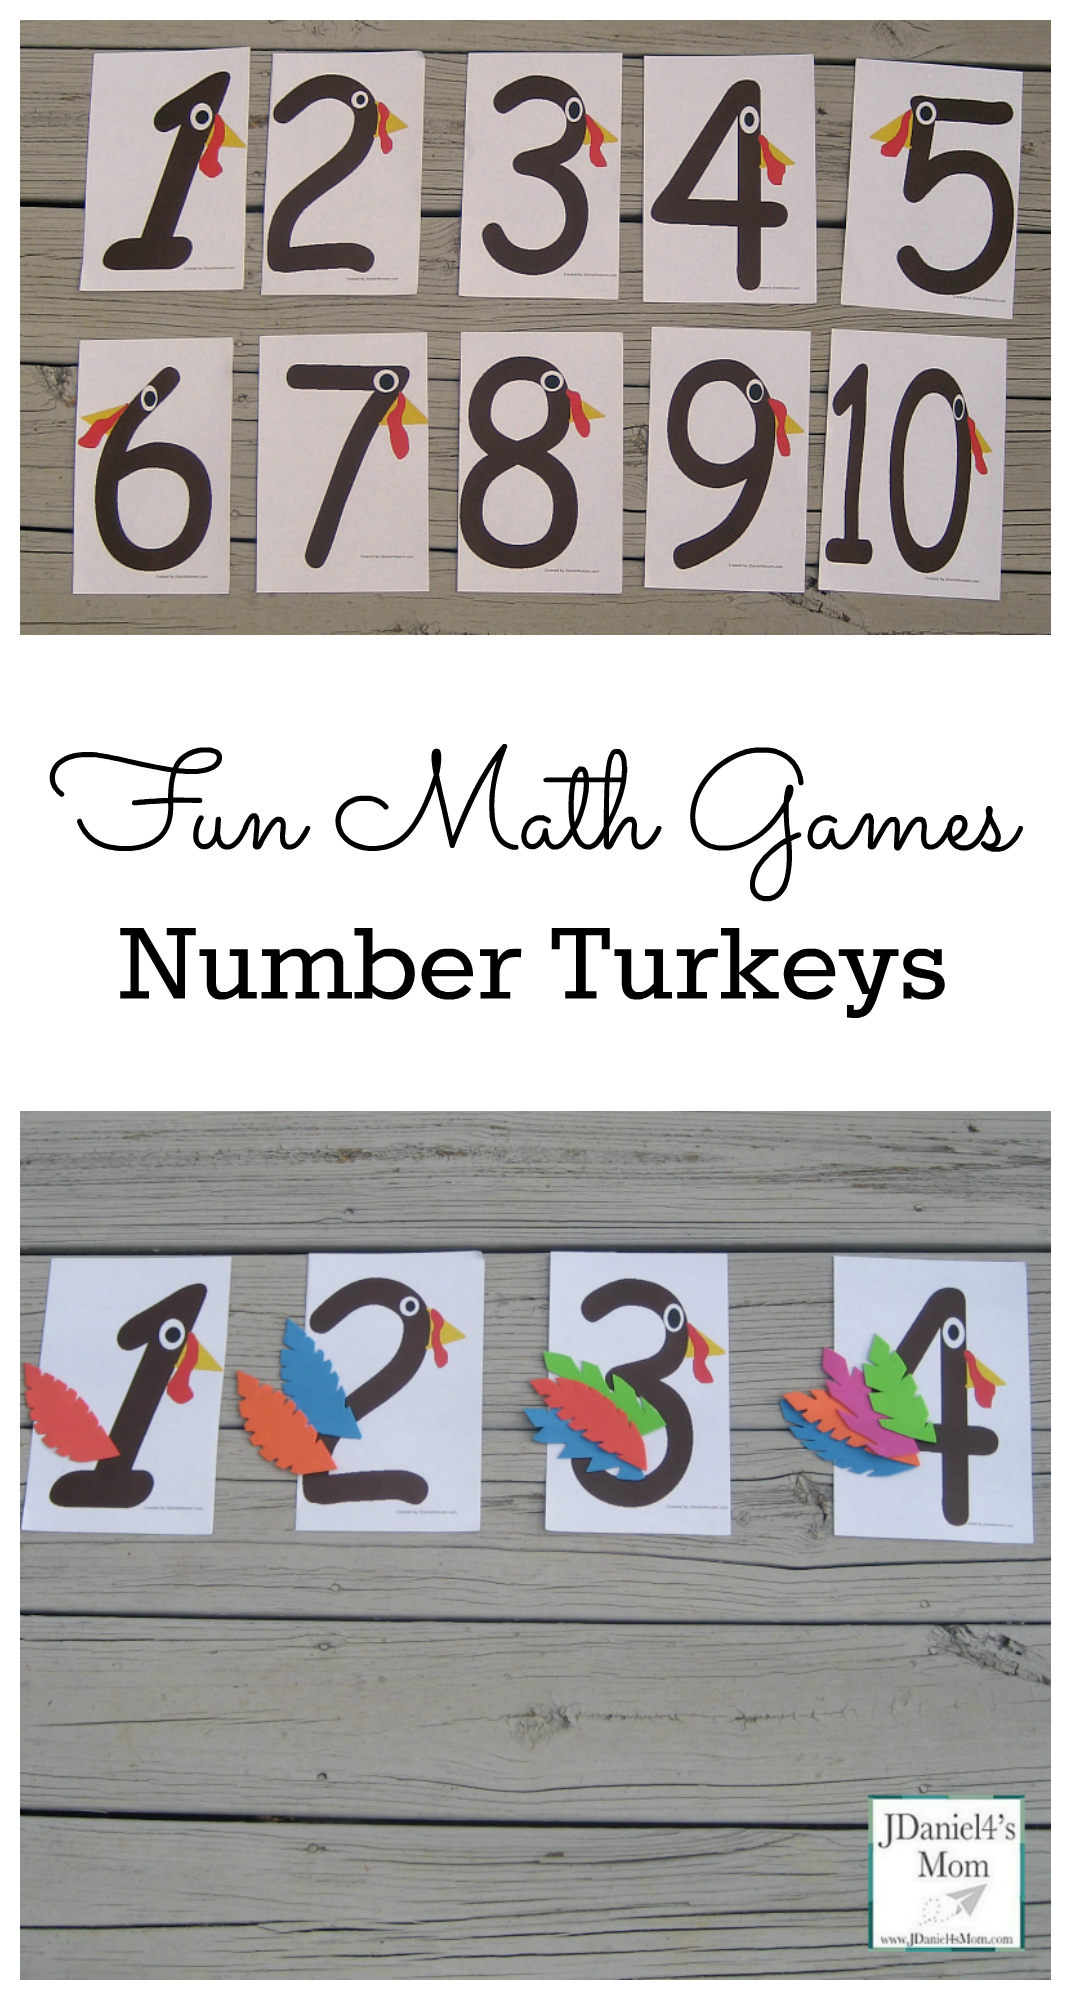 Fun Math Games Number Turkeys